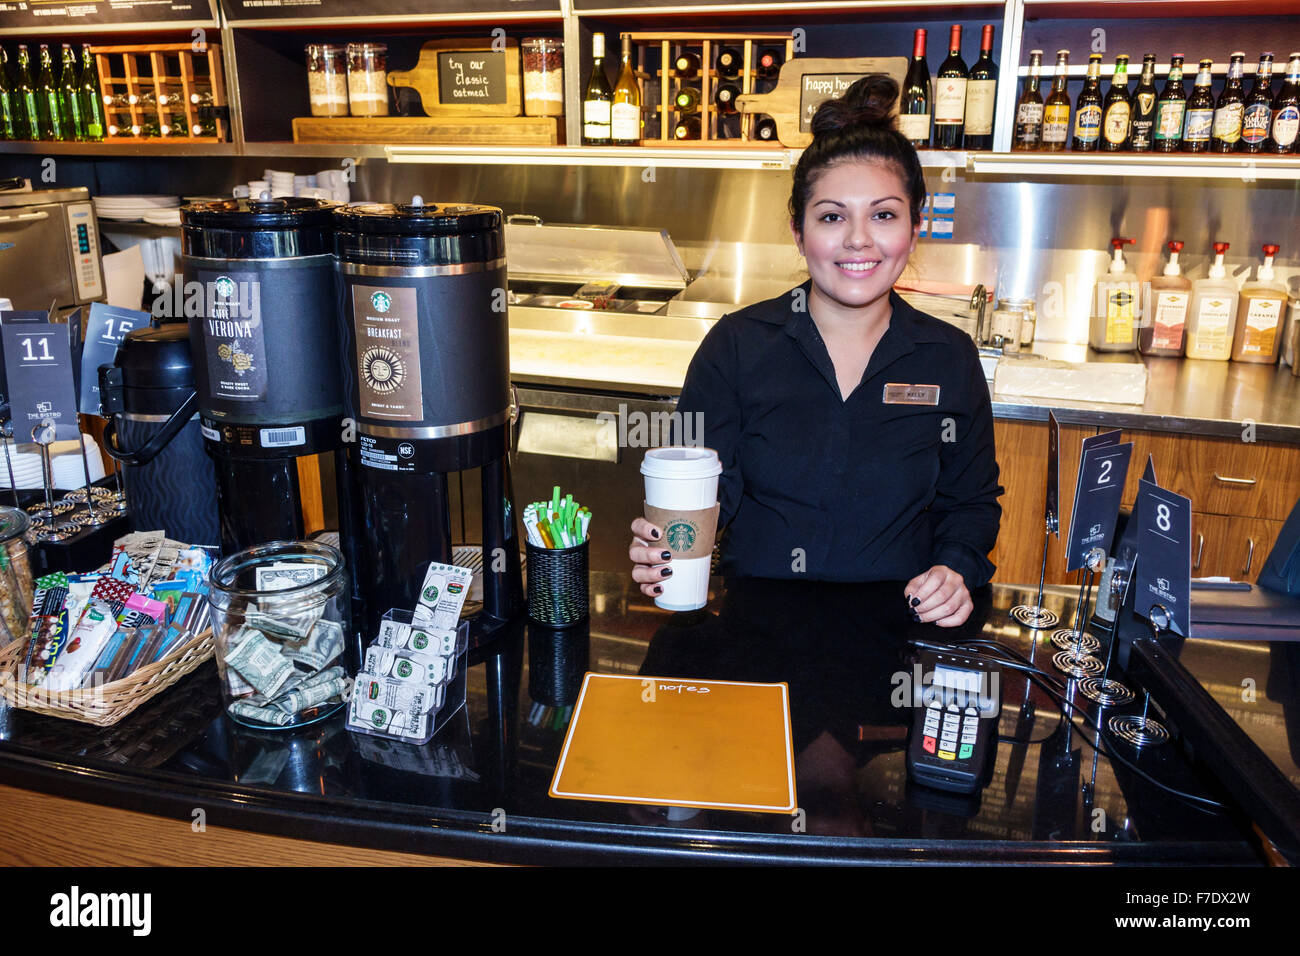 Stuart Florida Courtyard by Marriott motel hotel lobby cafe restaurant Starbucks Coffee Hispanic woman barista employee - Stock Image